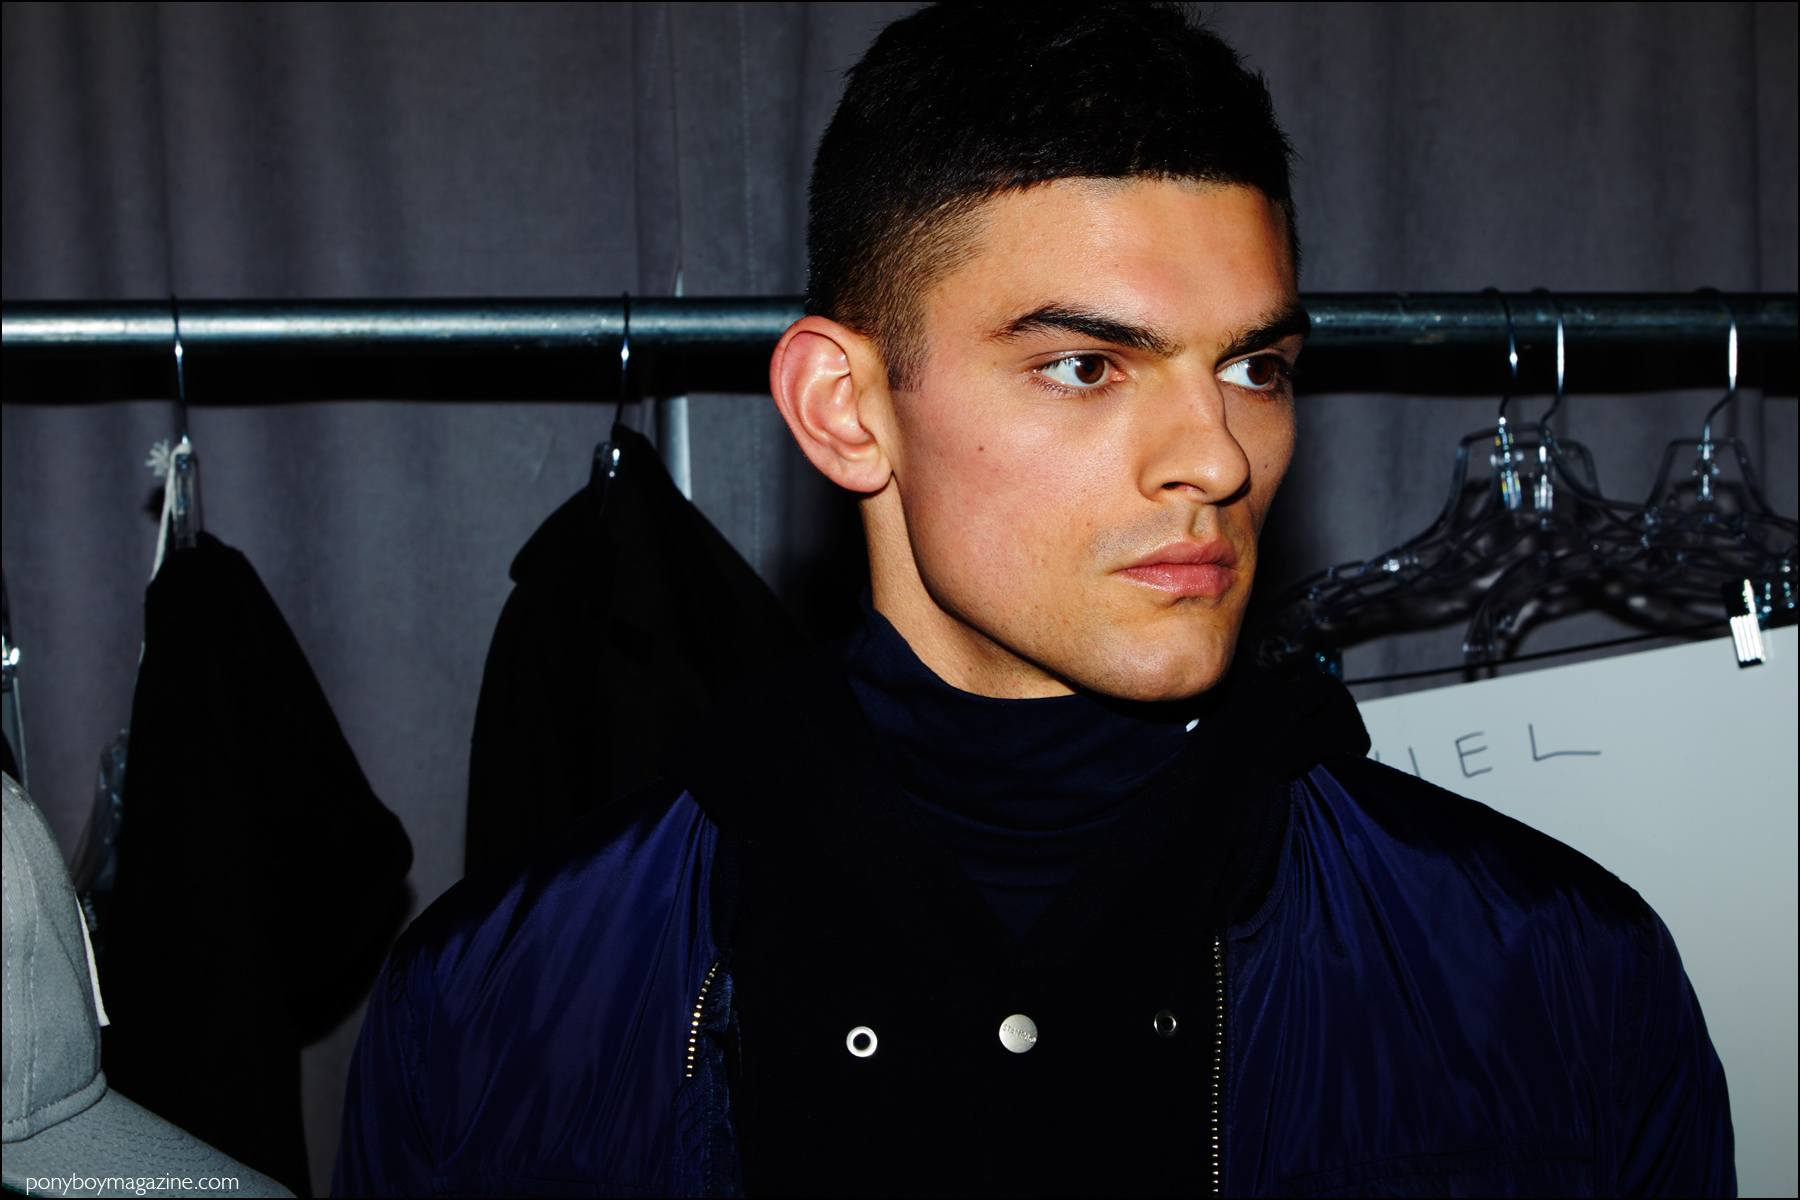 Male model Daniel McSweeney photographed backstage at Stampd F/W16 by Alexander Thompson for Ponyboy magazine NY.